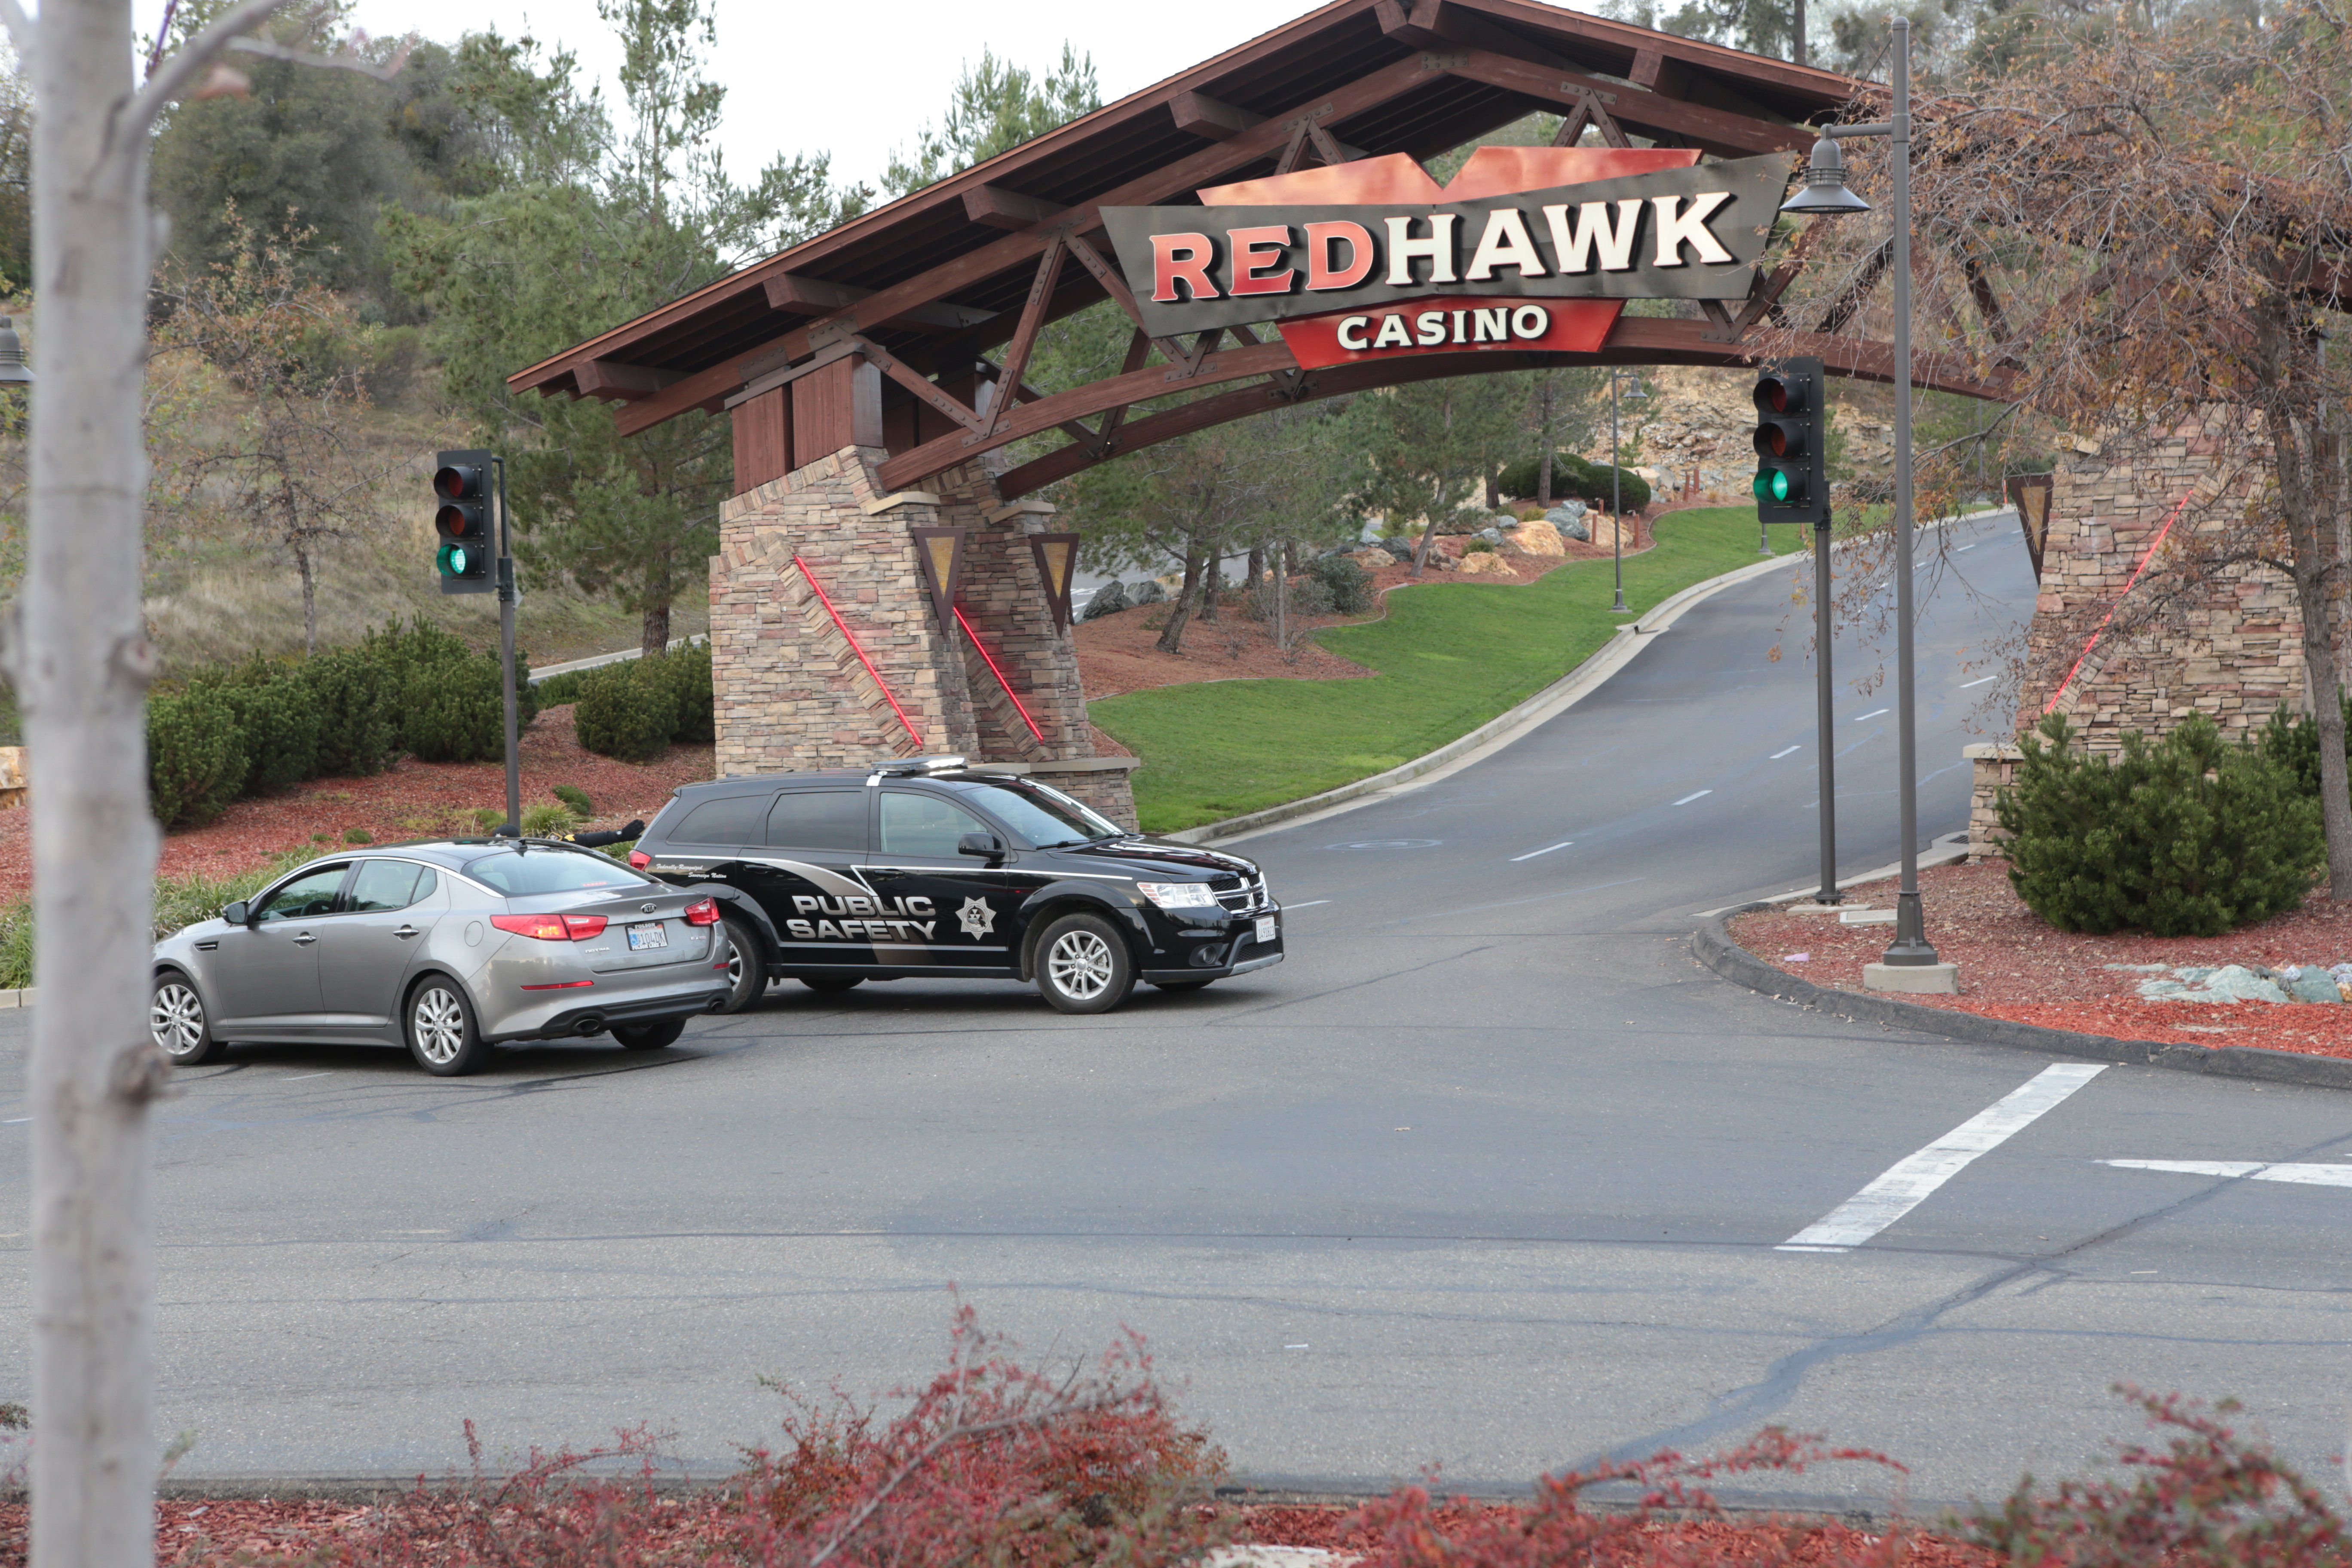 The 6th Level Of Red Hawk Casino S Parking Structure Was Off Limits Friday Morning As The El Dorado County Sheriff S With Images El Dorado County El Dorado County Sheriffs